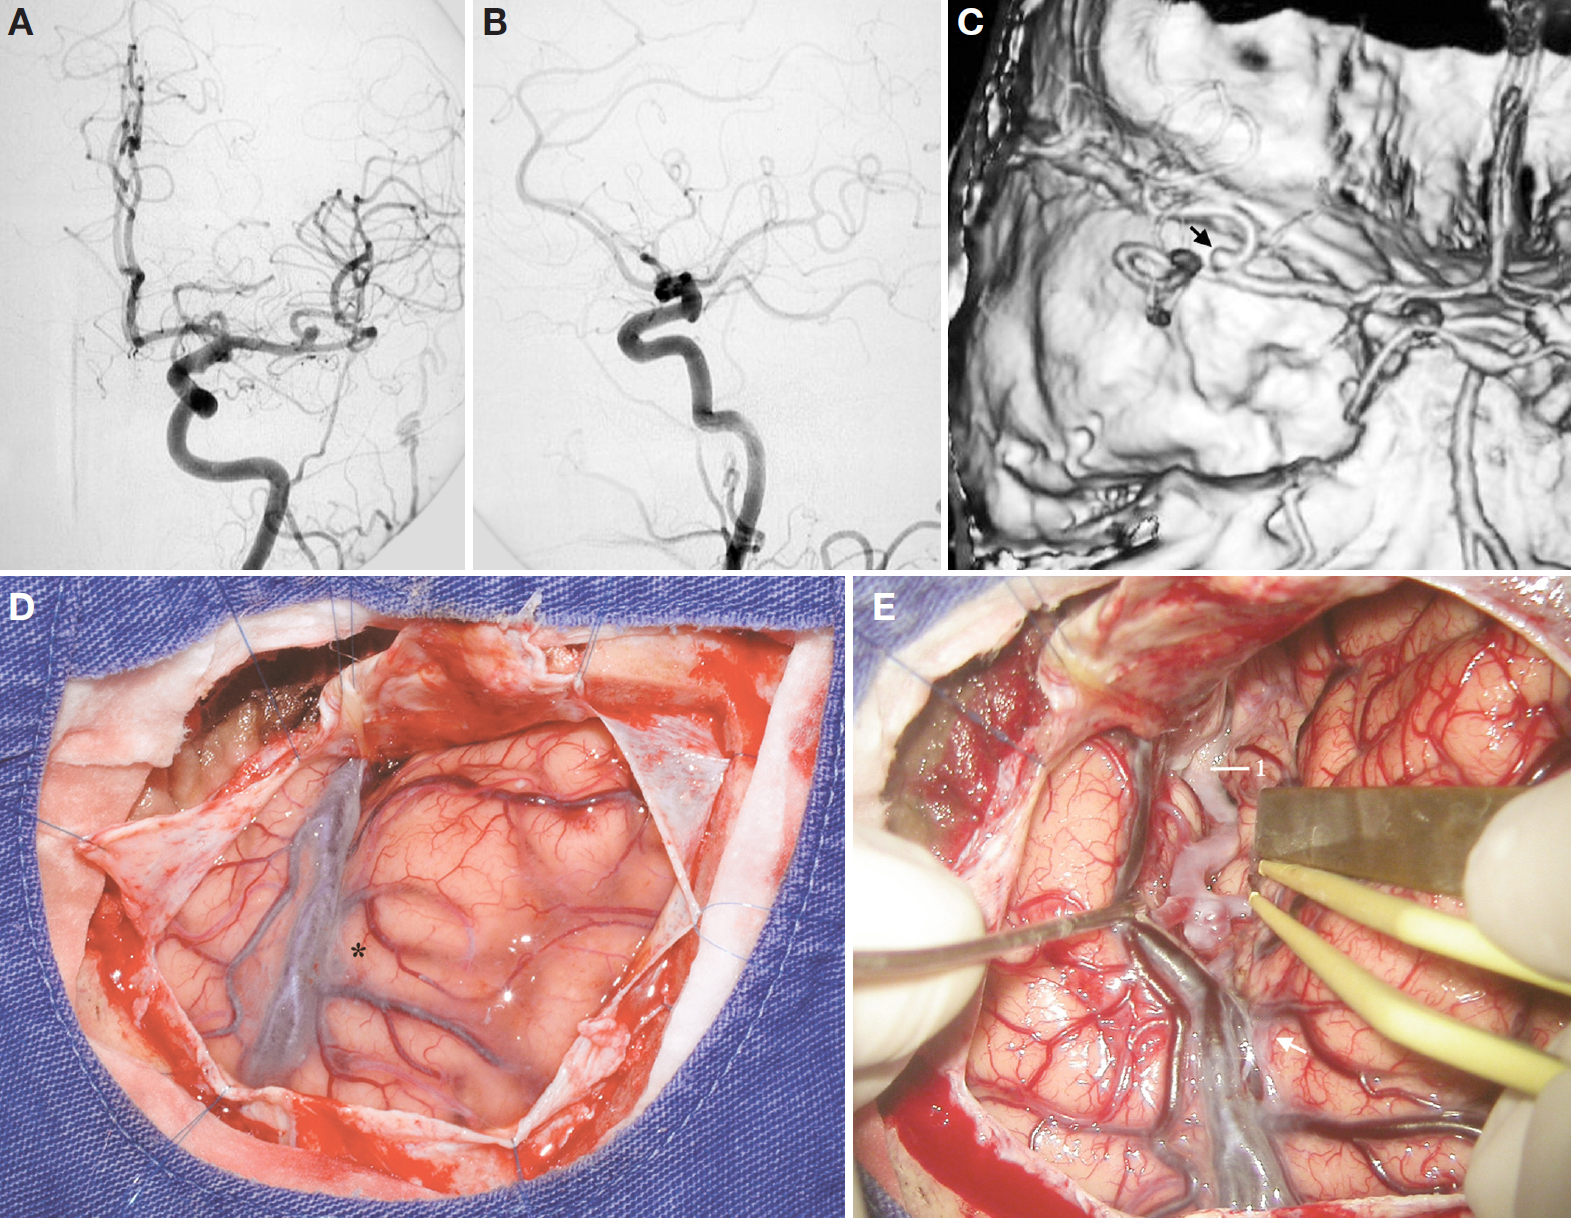 Figure 14. A, AP view of a left carotid angiography depicting an MCA aneurysm arising proximal to the genu of the MCA, in the distal half of the M1 and pointing superiorly in this projection. B, lateral projection of the same carotid angiography shown in A. Because of the superimposition of the vessels, it is difficult to visualize the aneurysm. C, Angiography-CT depicting the aneurysm (arrow) shown in A. D, surgical exposure after a left pterional craniotomy and dural opening. Asterisk, pars triangularis. E, the sylvian fissure was split just proximal to the tip of the pars triangularis (arrow). Note the distance between the aneurysm and the tip of the pars triangularis (arrow). The carotid bifurcation is located at the level of the tip of the spatula. 1, supraclinoid carotid artery. (Images courtesy of AL Rhoton, Jr.)